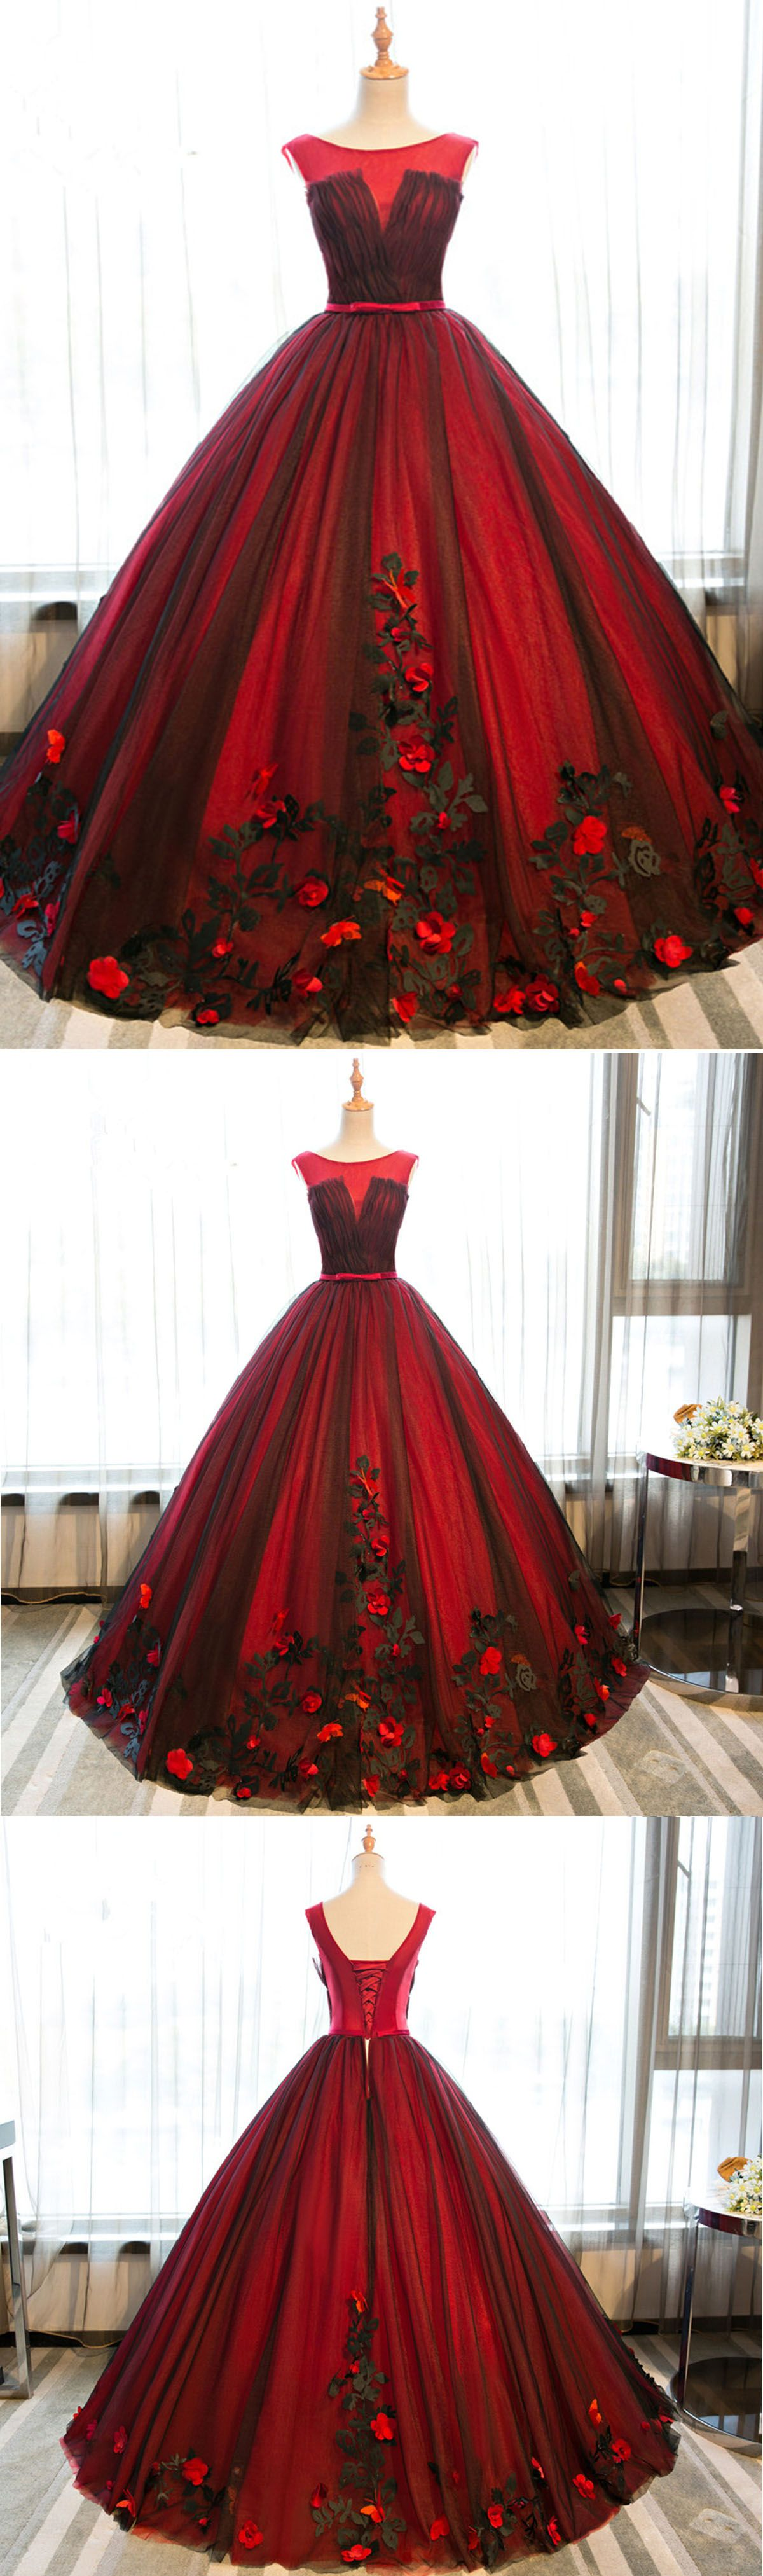 Beautiful red satin long poofy prom gown for teens prom gown